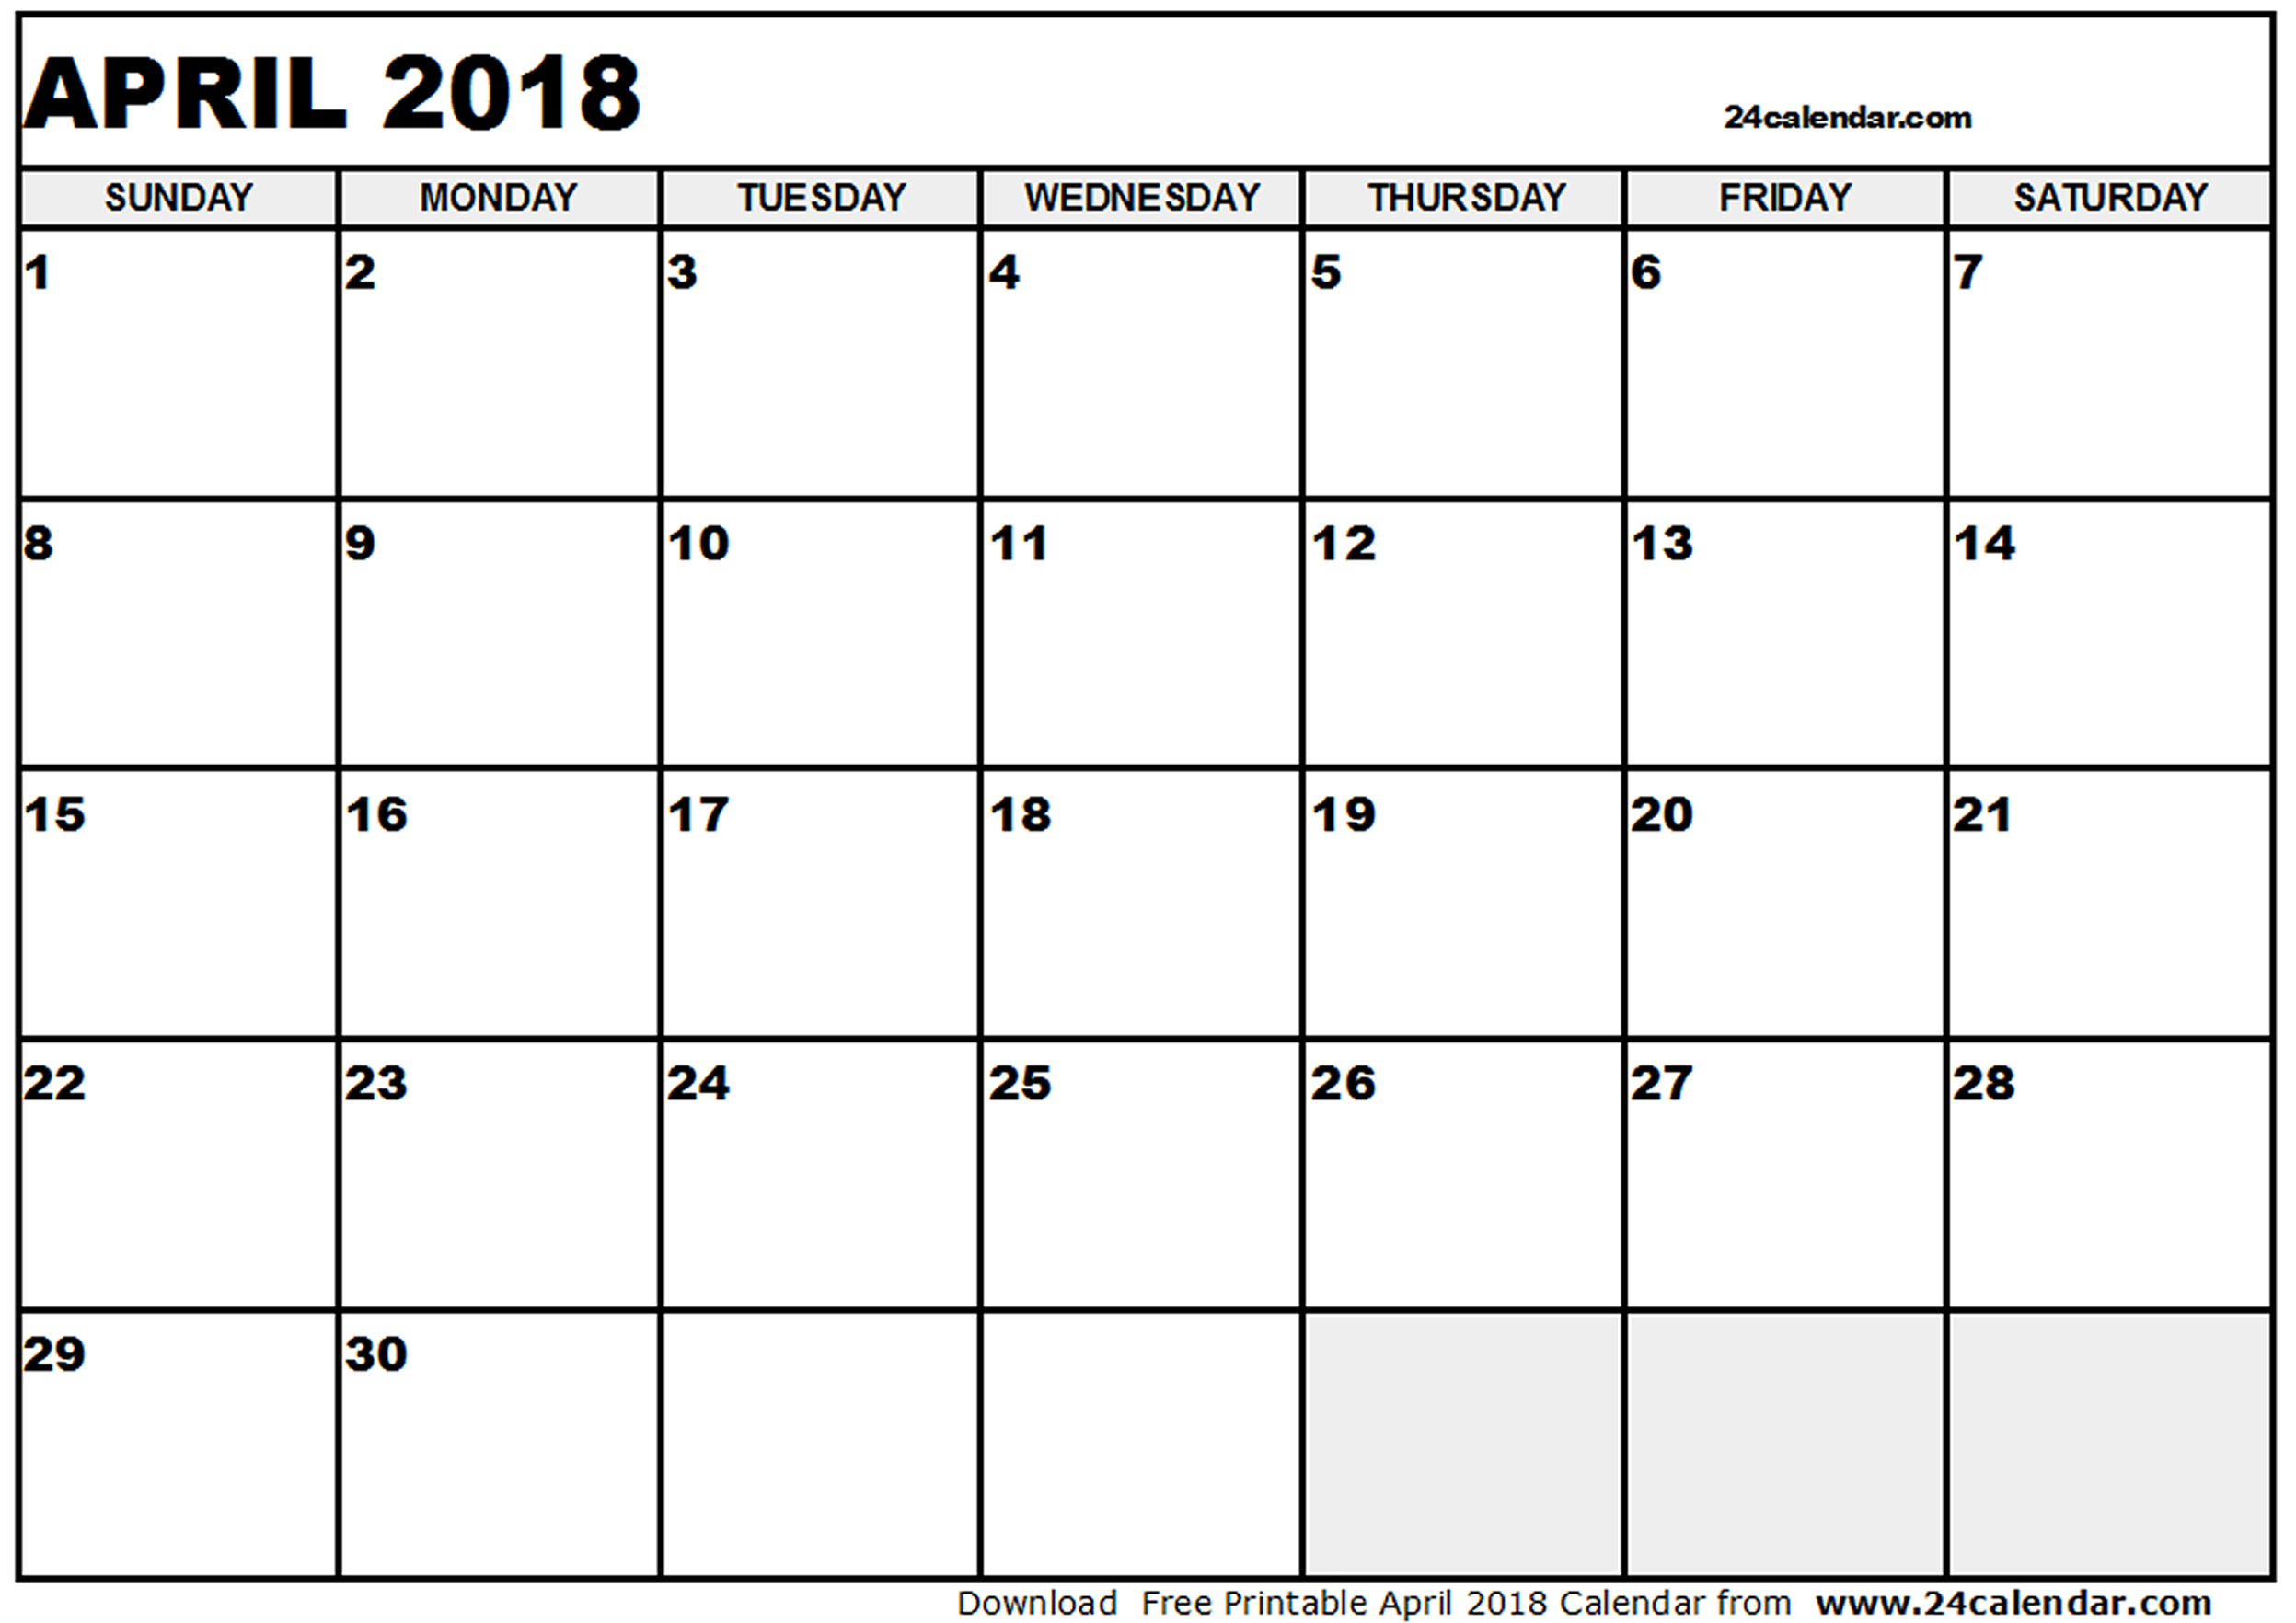 Free April 2018 printable calendar download